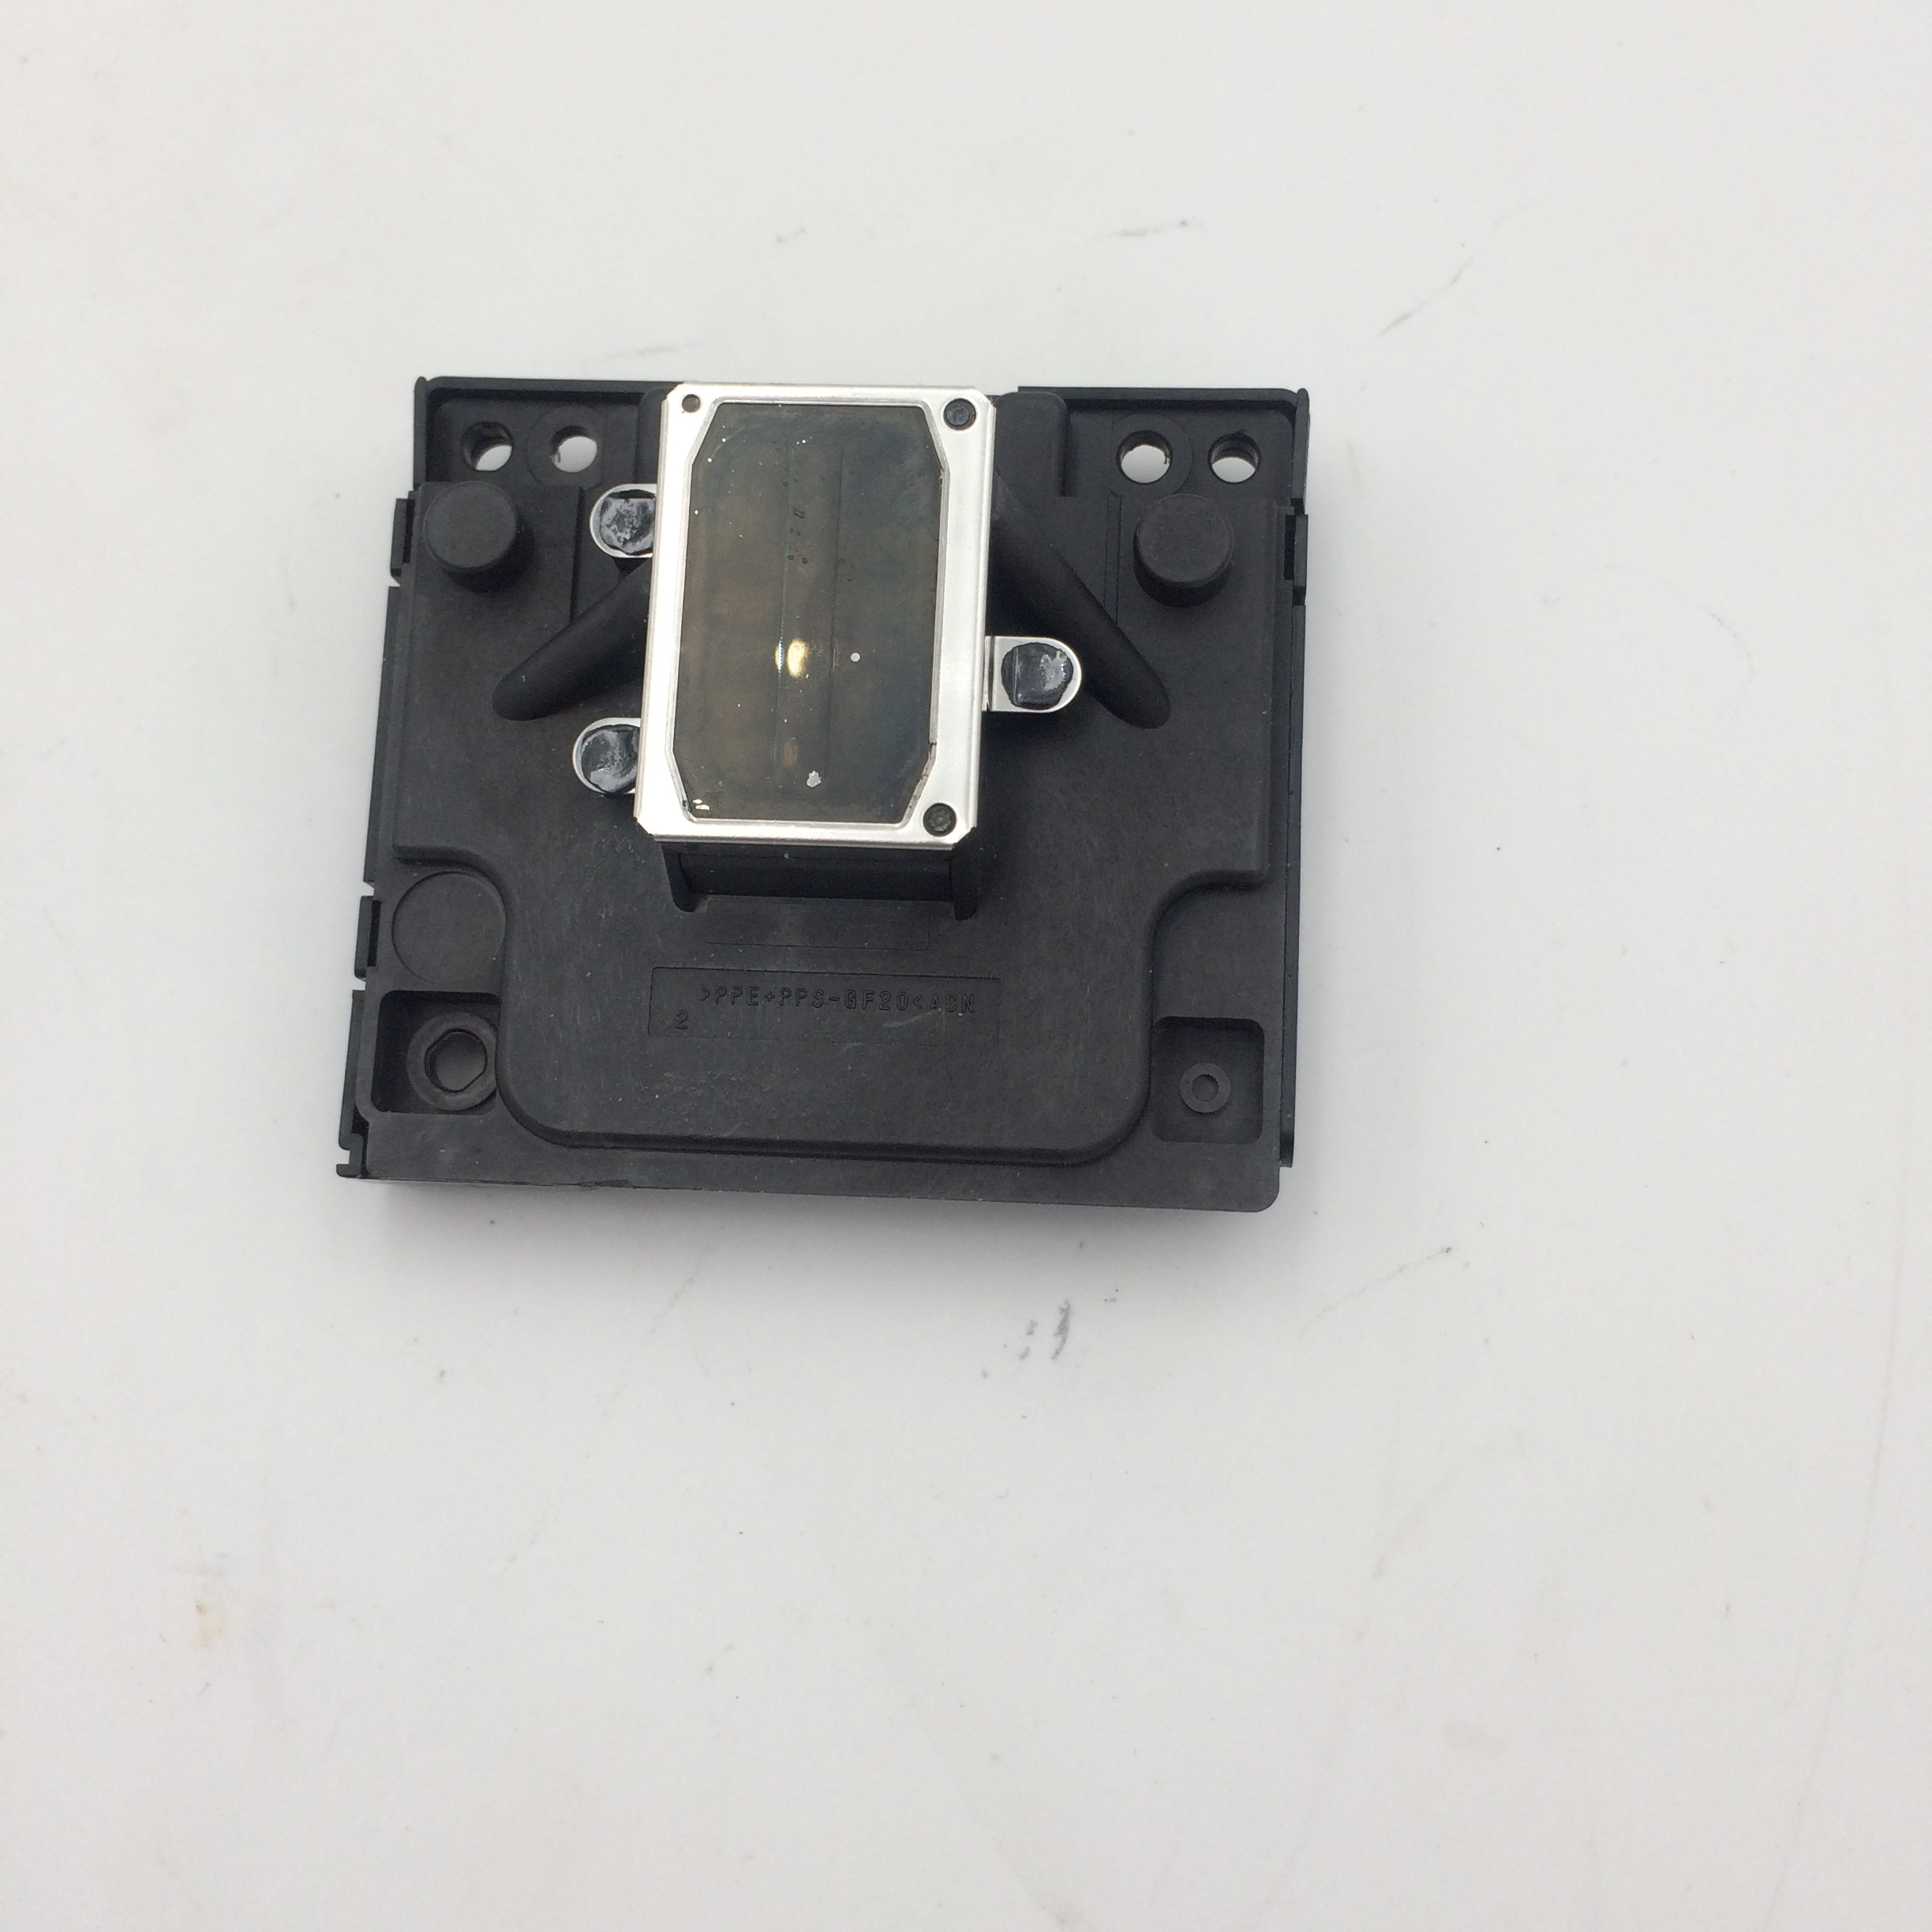 Printhead Compatible For <font><b>EPSON</b></font> T22 T25 TX135 SX125 TX300F <font><b>TX320F</b></font> TX130 TX120 BX300 BX305 SX235 SX130 Printer head image